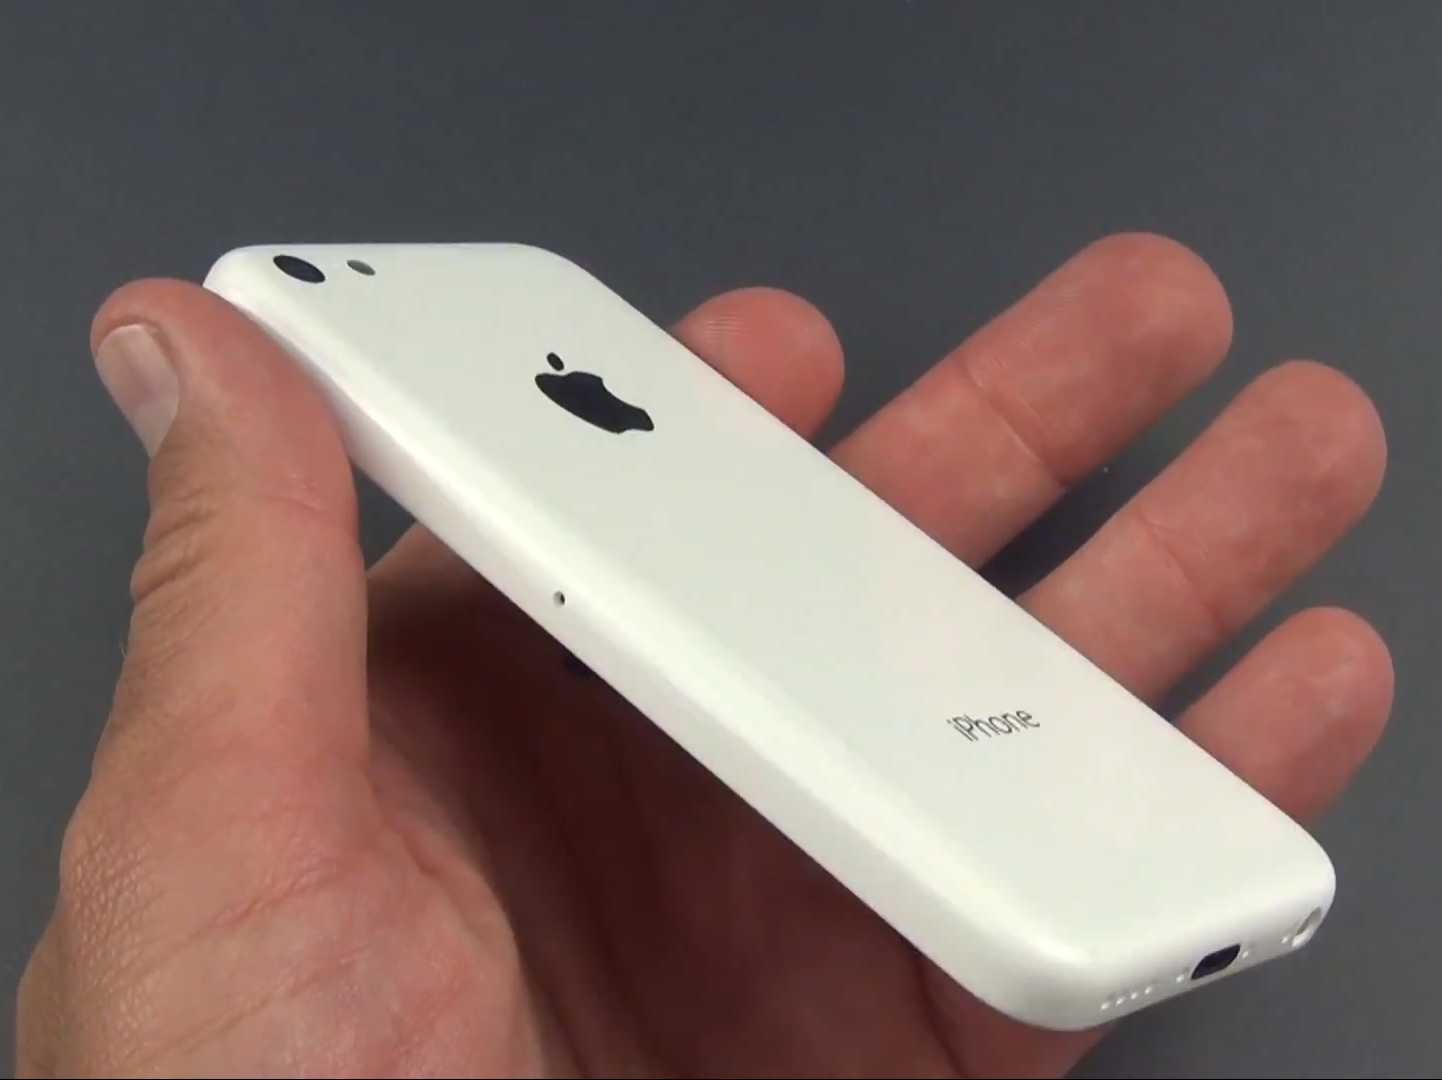 iphone.5c.video_.svtv_.3.jpg